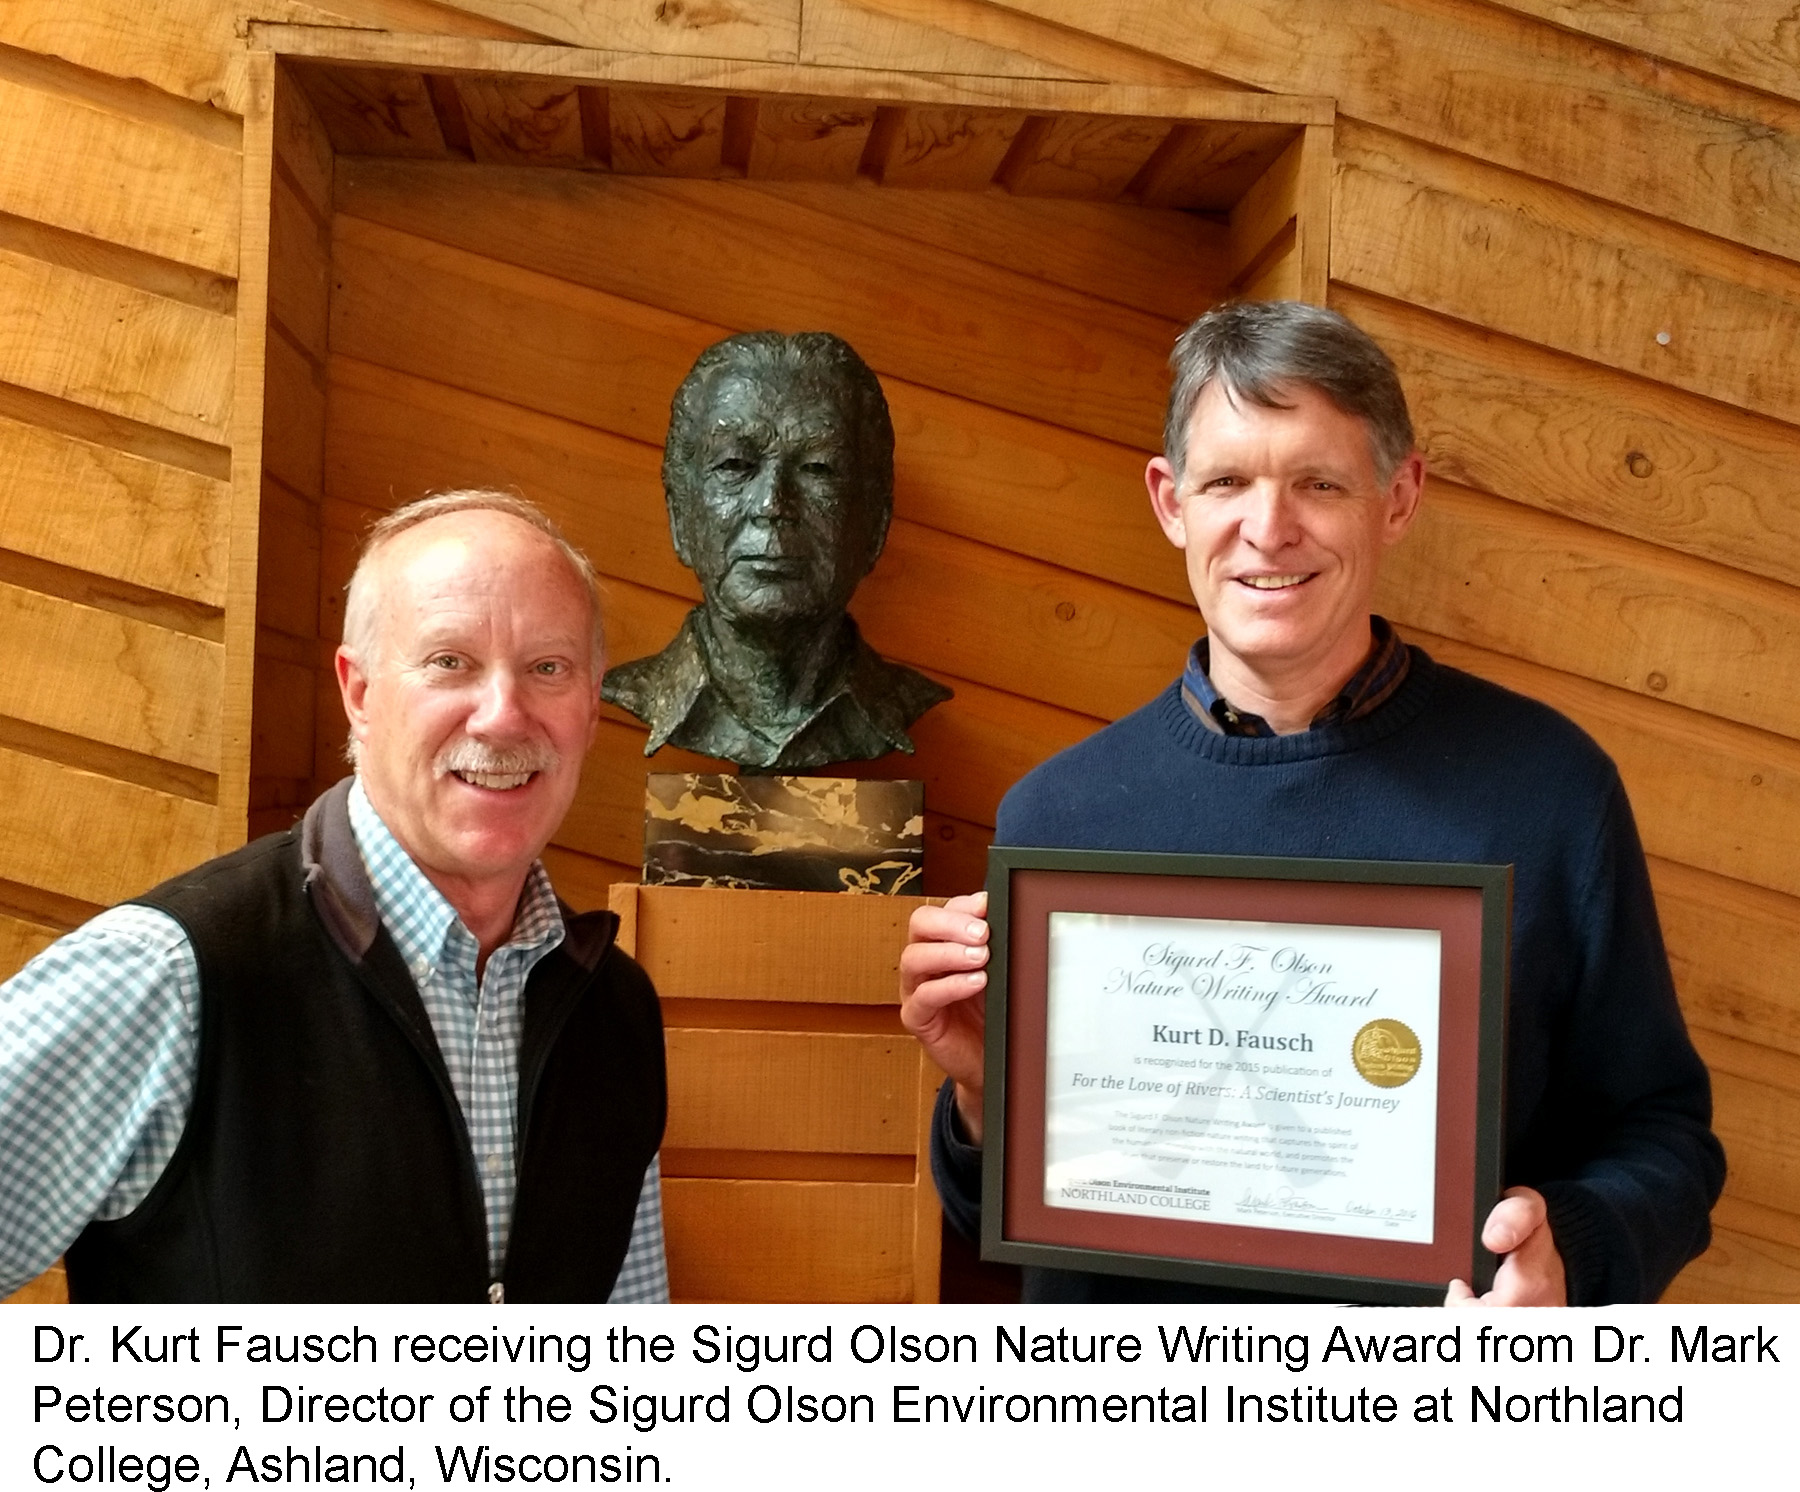 Dr. Kurt Fausch receiving the Sigurd Olson Nature Writing Award from Dr. Mark Peterson, Director of the Sigurd Olson Environmental Institute at Northland College, Ashland, Wisconsin